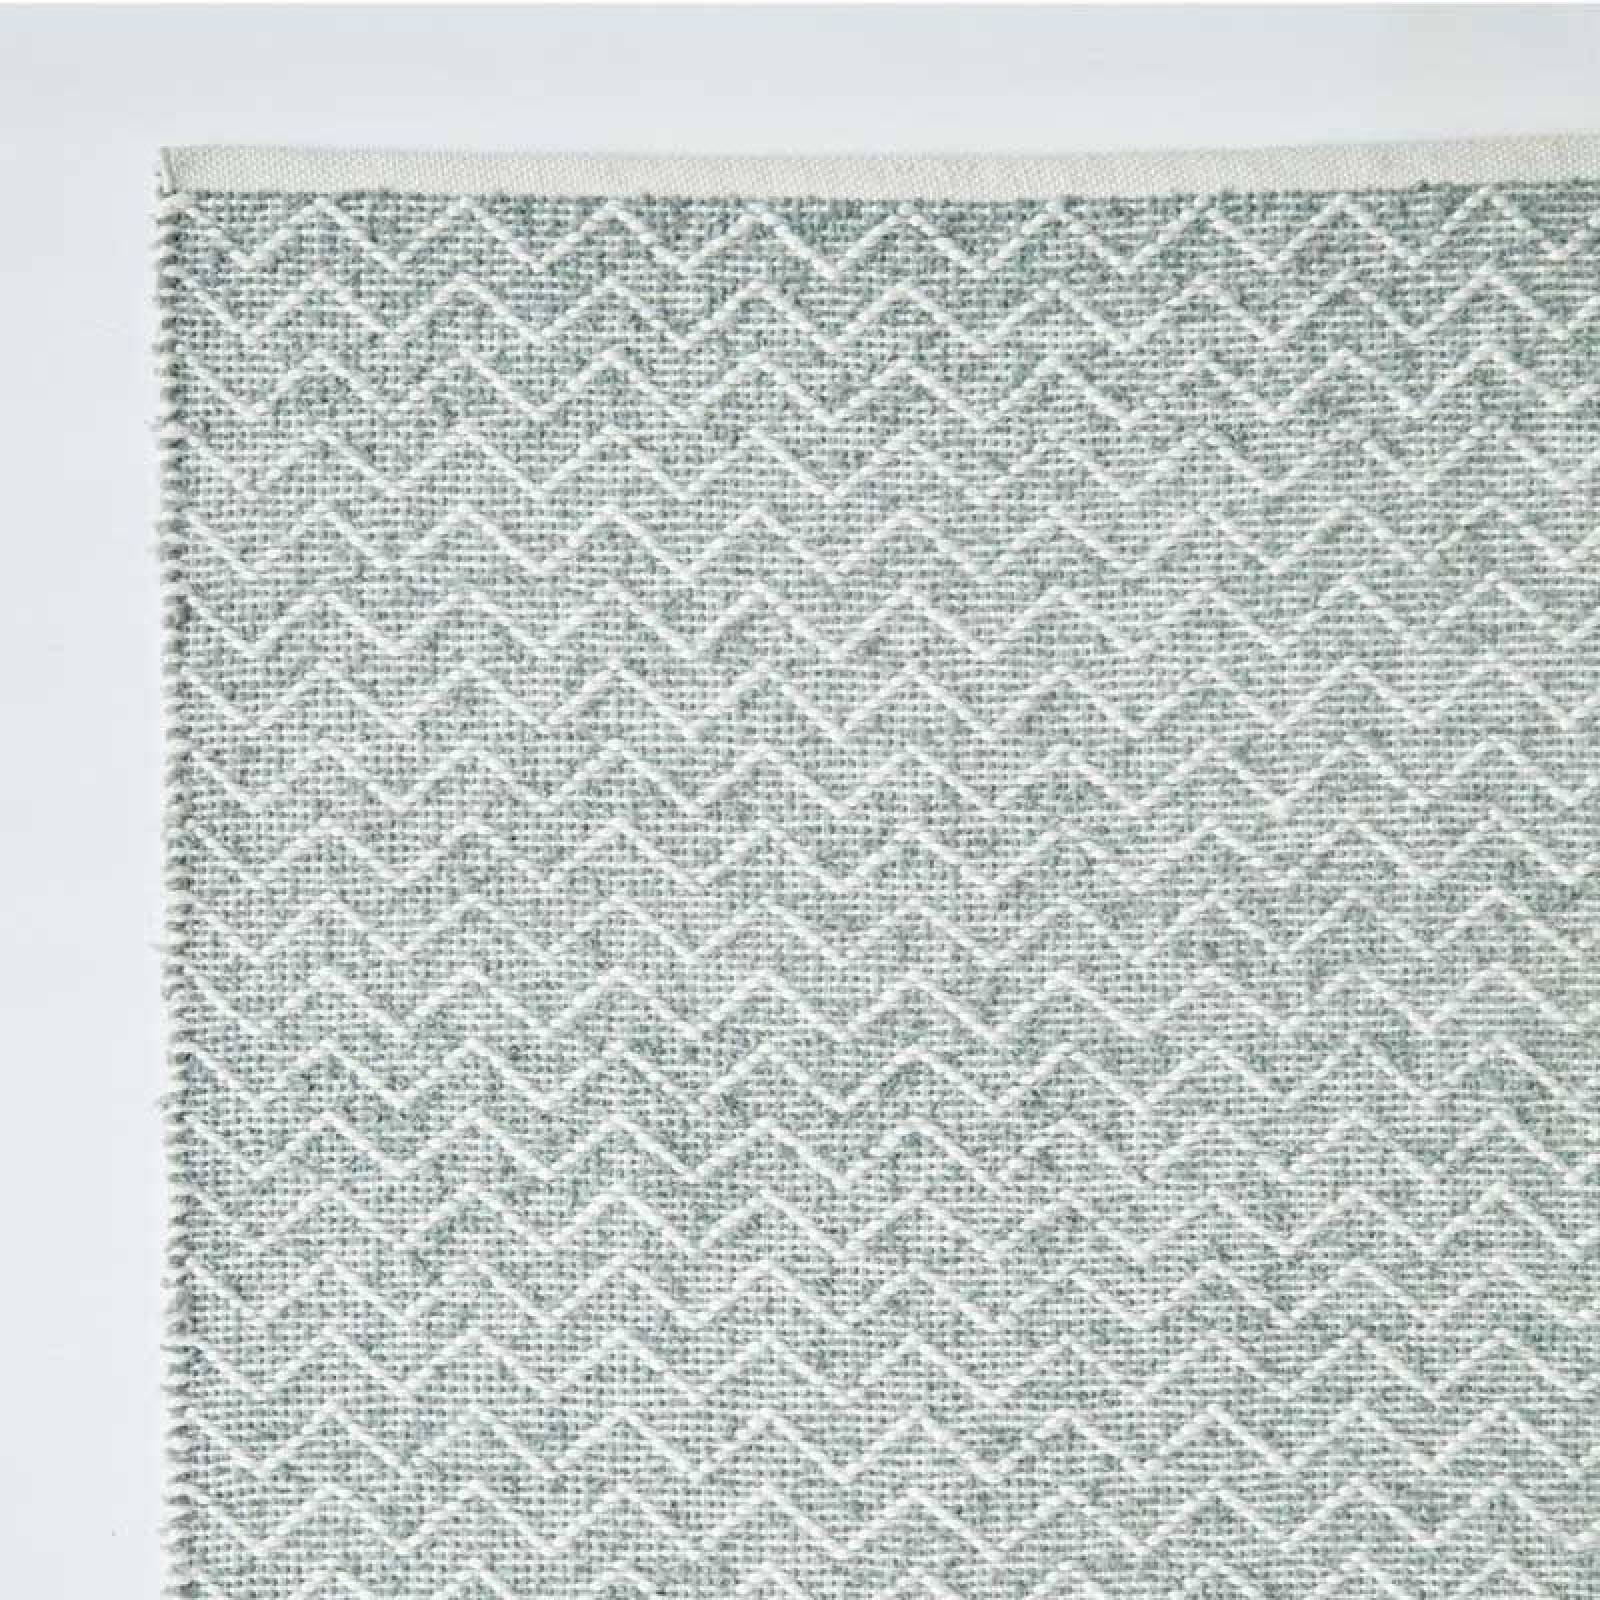 Chenille Dove Grey 240 x 70cm Recycled Bottle Rug